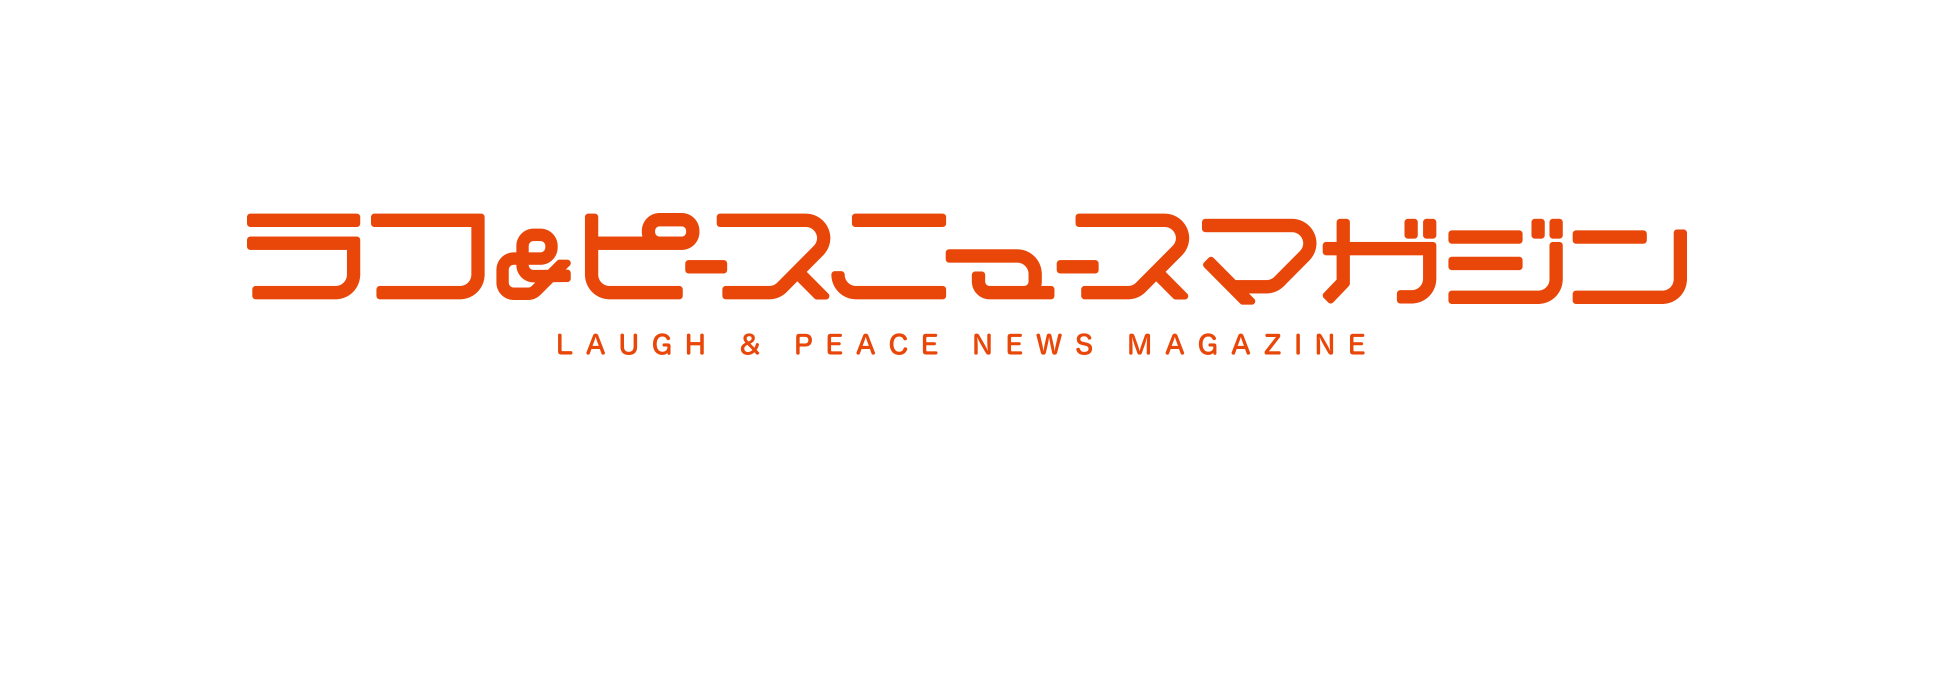 http://news.yoshimoto.co.jp/20190204145920-4d91c402dc206be0dad4f0434a7f0b92a25c0046.png